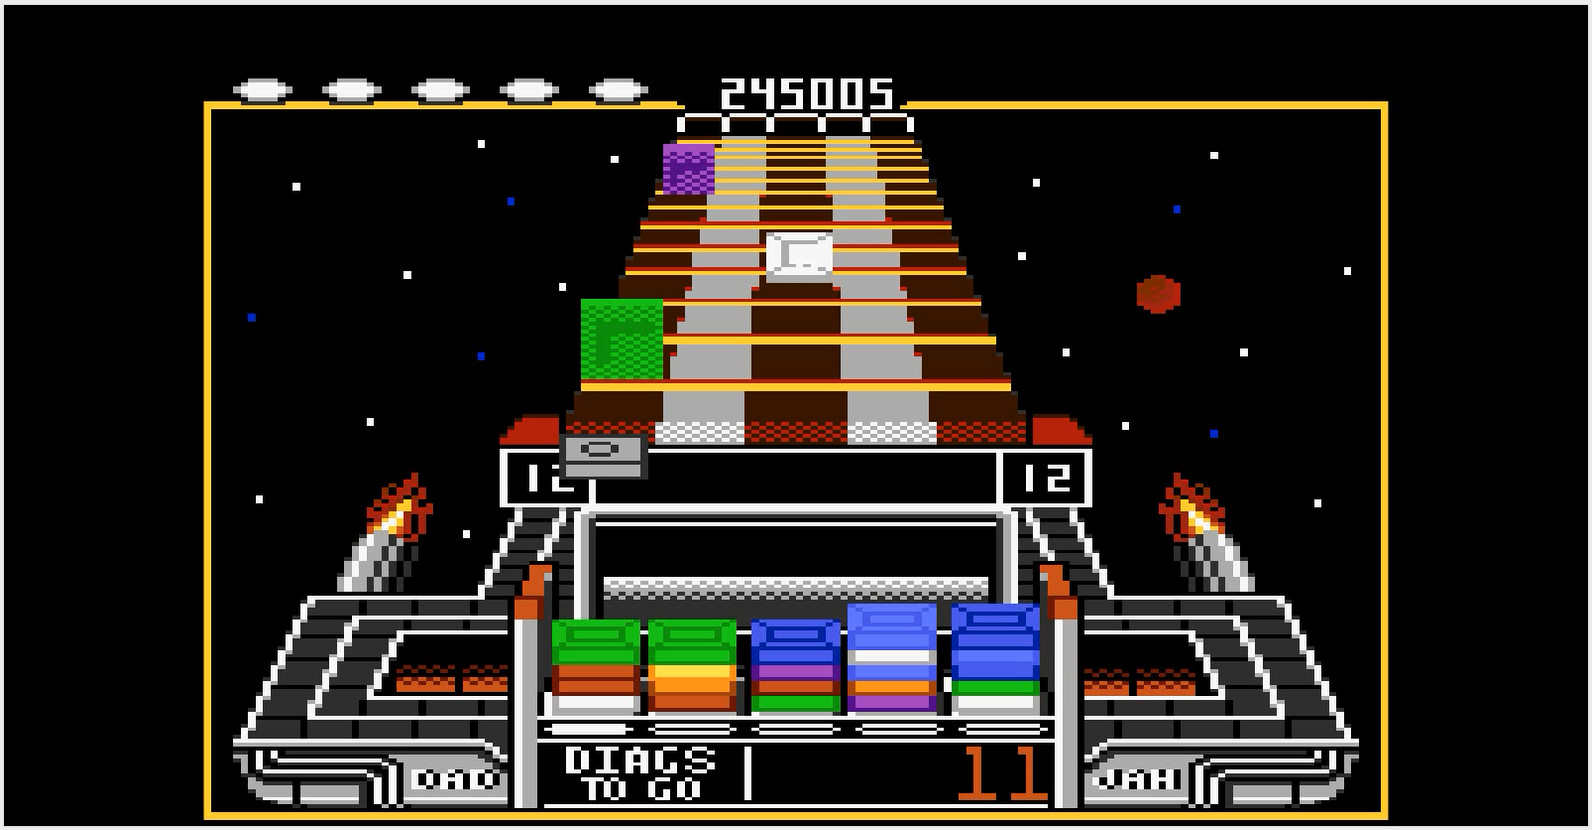 Scrabbler15: Klax: Easy [Level 11 Start] (Atari 7800 Emulated) 245,005 points on 2015-01-17 20:54:31